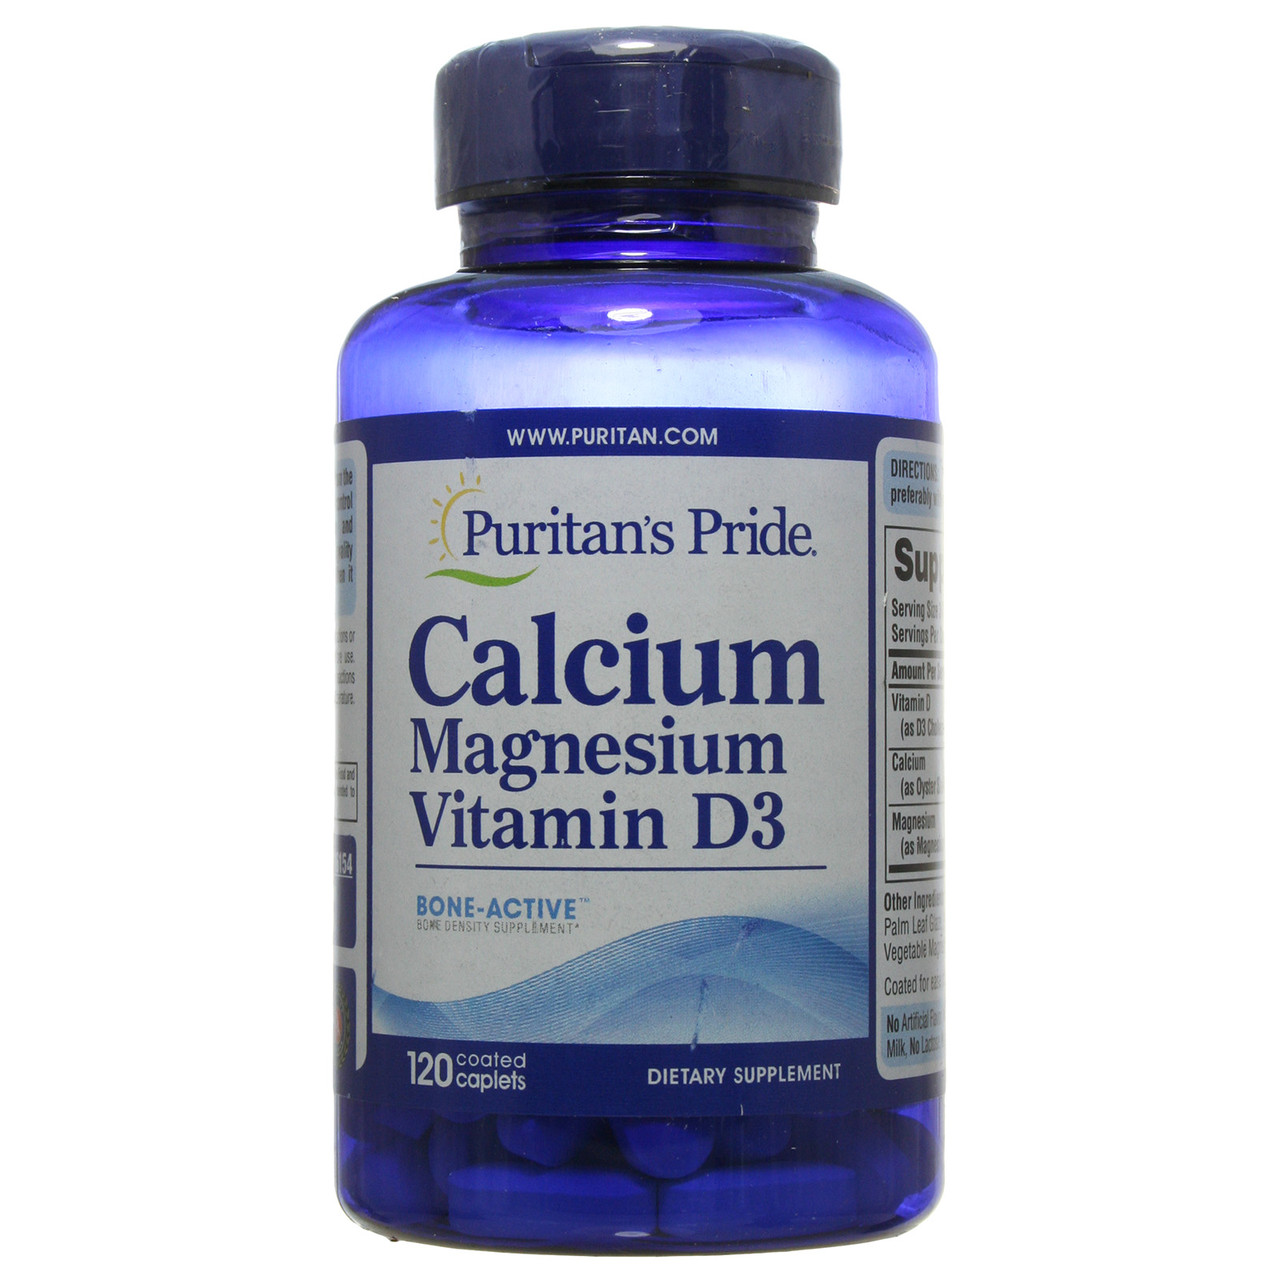 Кальций Магний Витамин Д, Calcium Magnesium with Vitamin D, Puritan's Pride, 120 таблеток